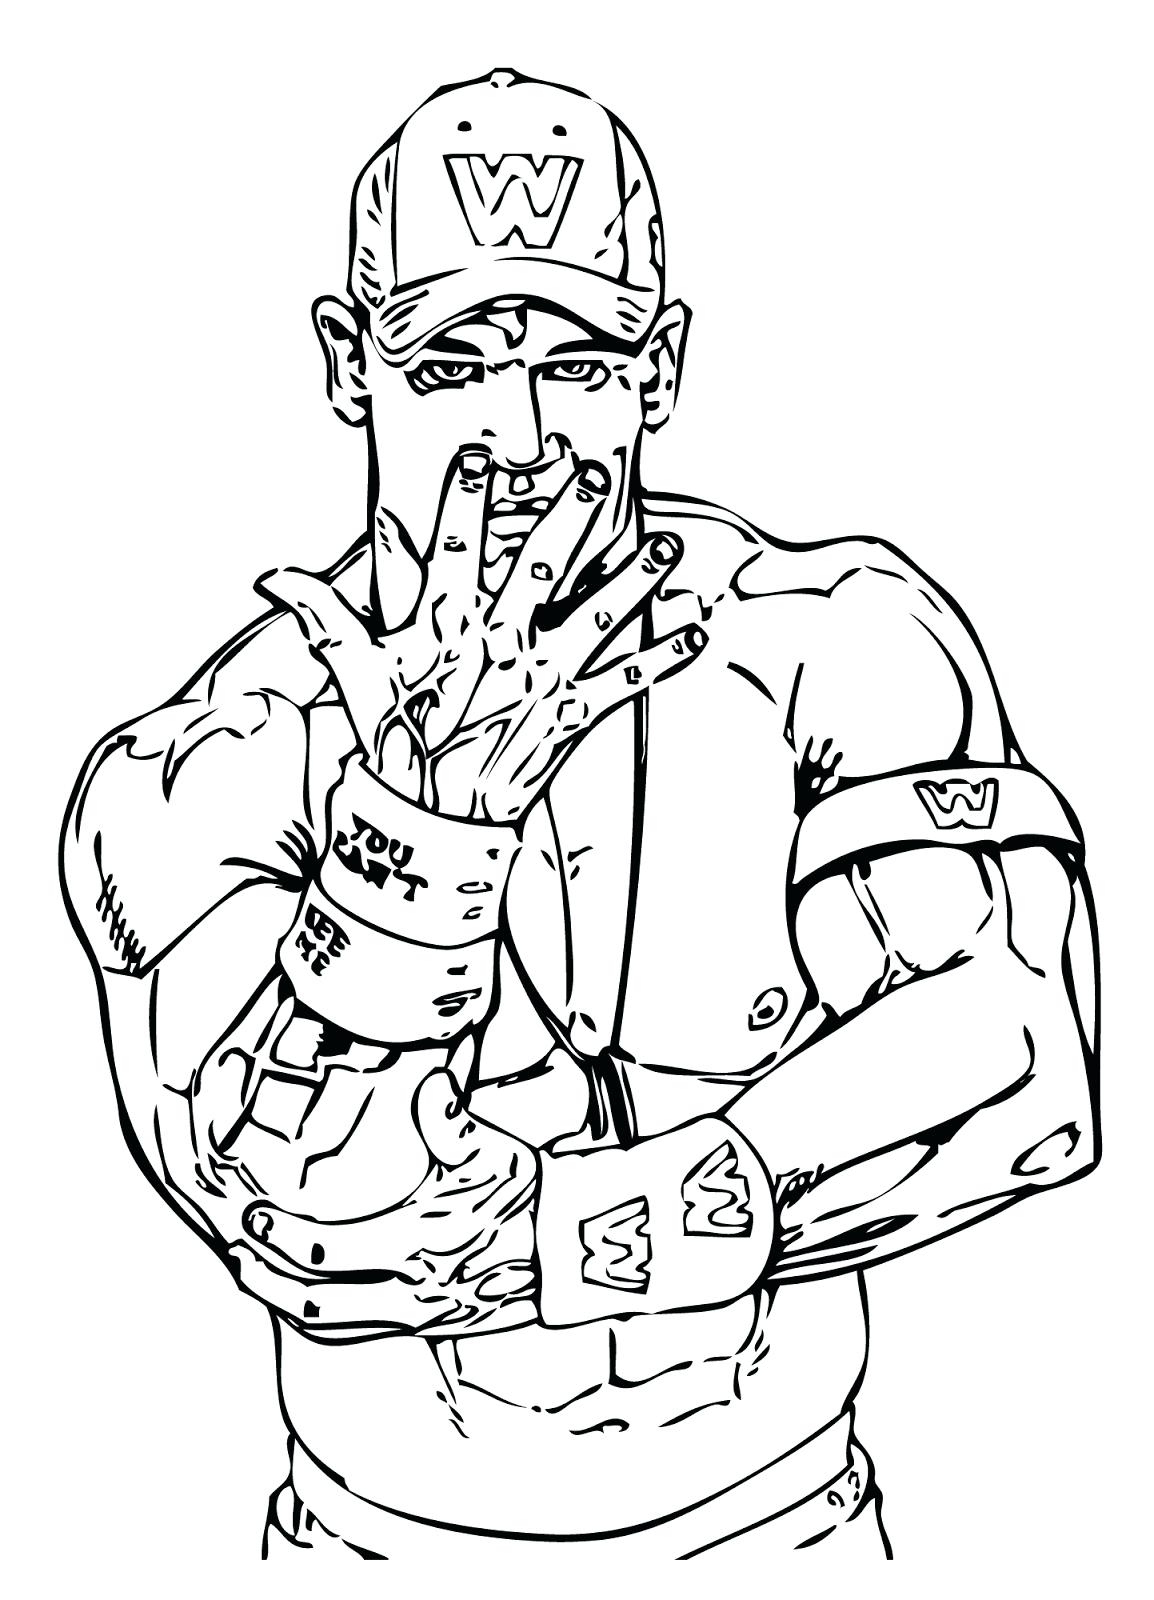 1154x1600 Coloring Wwe Belt Coloring Pages Champion. Wwe Belt Coloring Pages